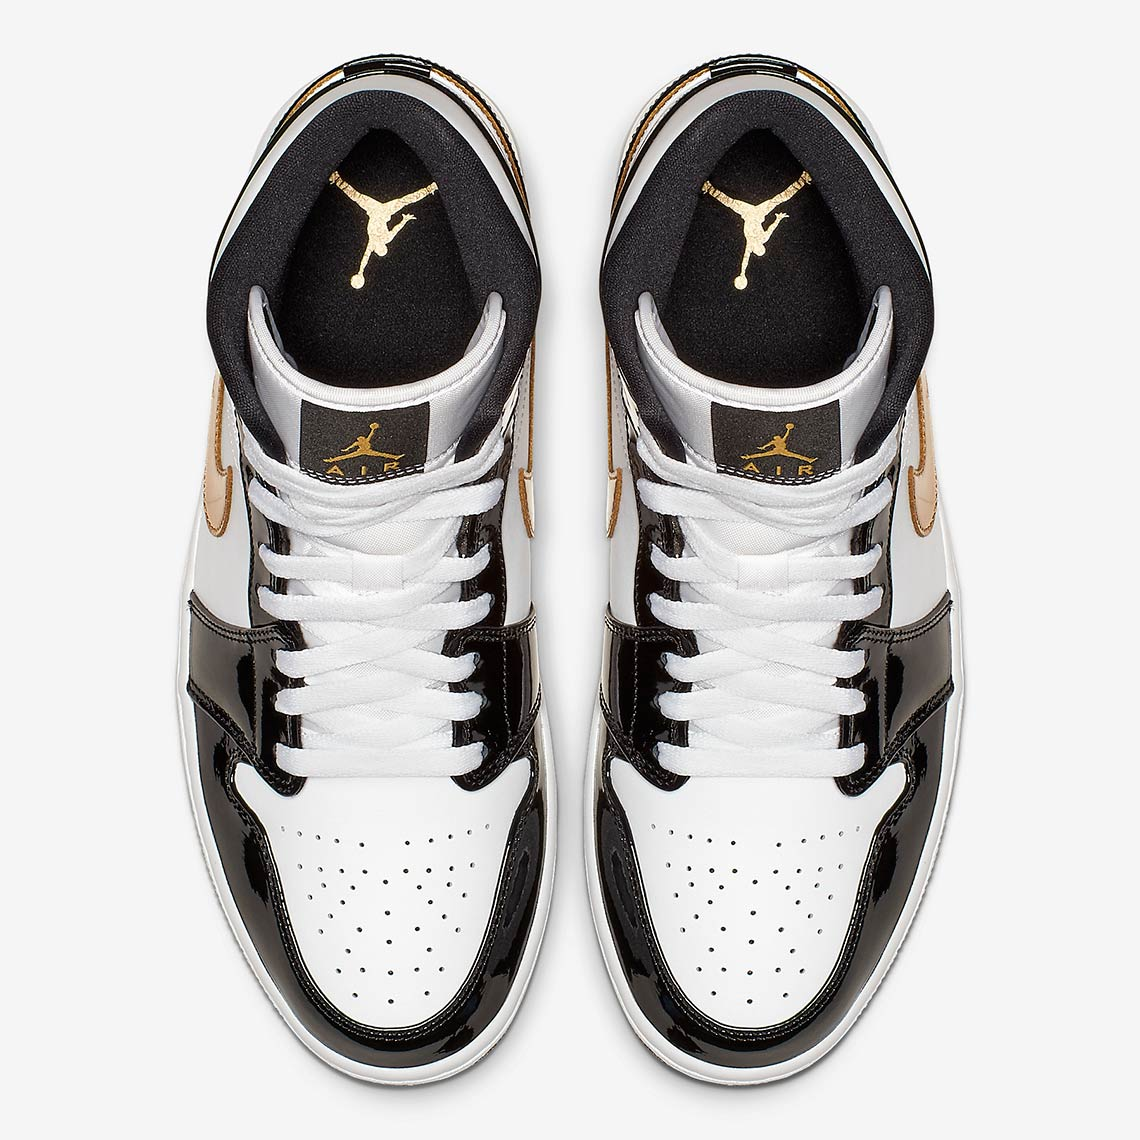 sports shoes f2c32 3ebdf An all-black patent leather Air Jordan 1 Mid hit stores earlier in  December, and now the 1 Mid has received a black gold white color scheme  that offers ...